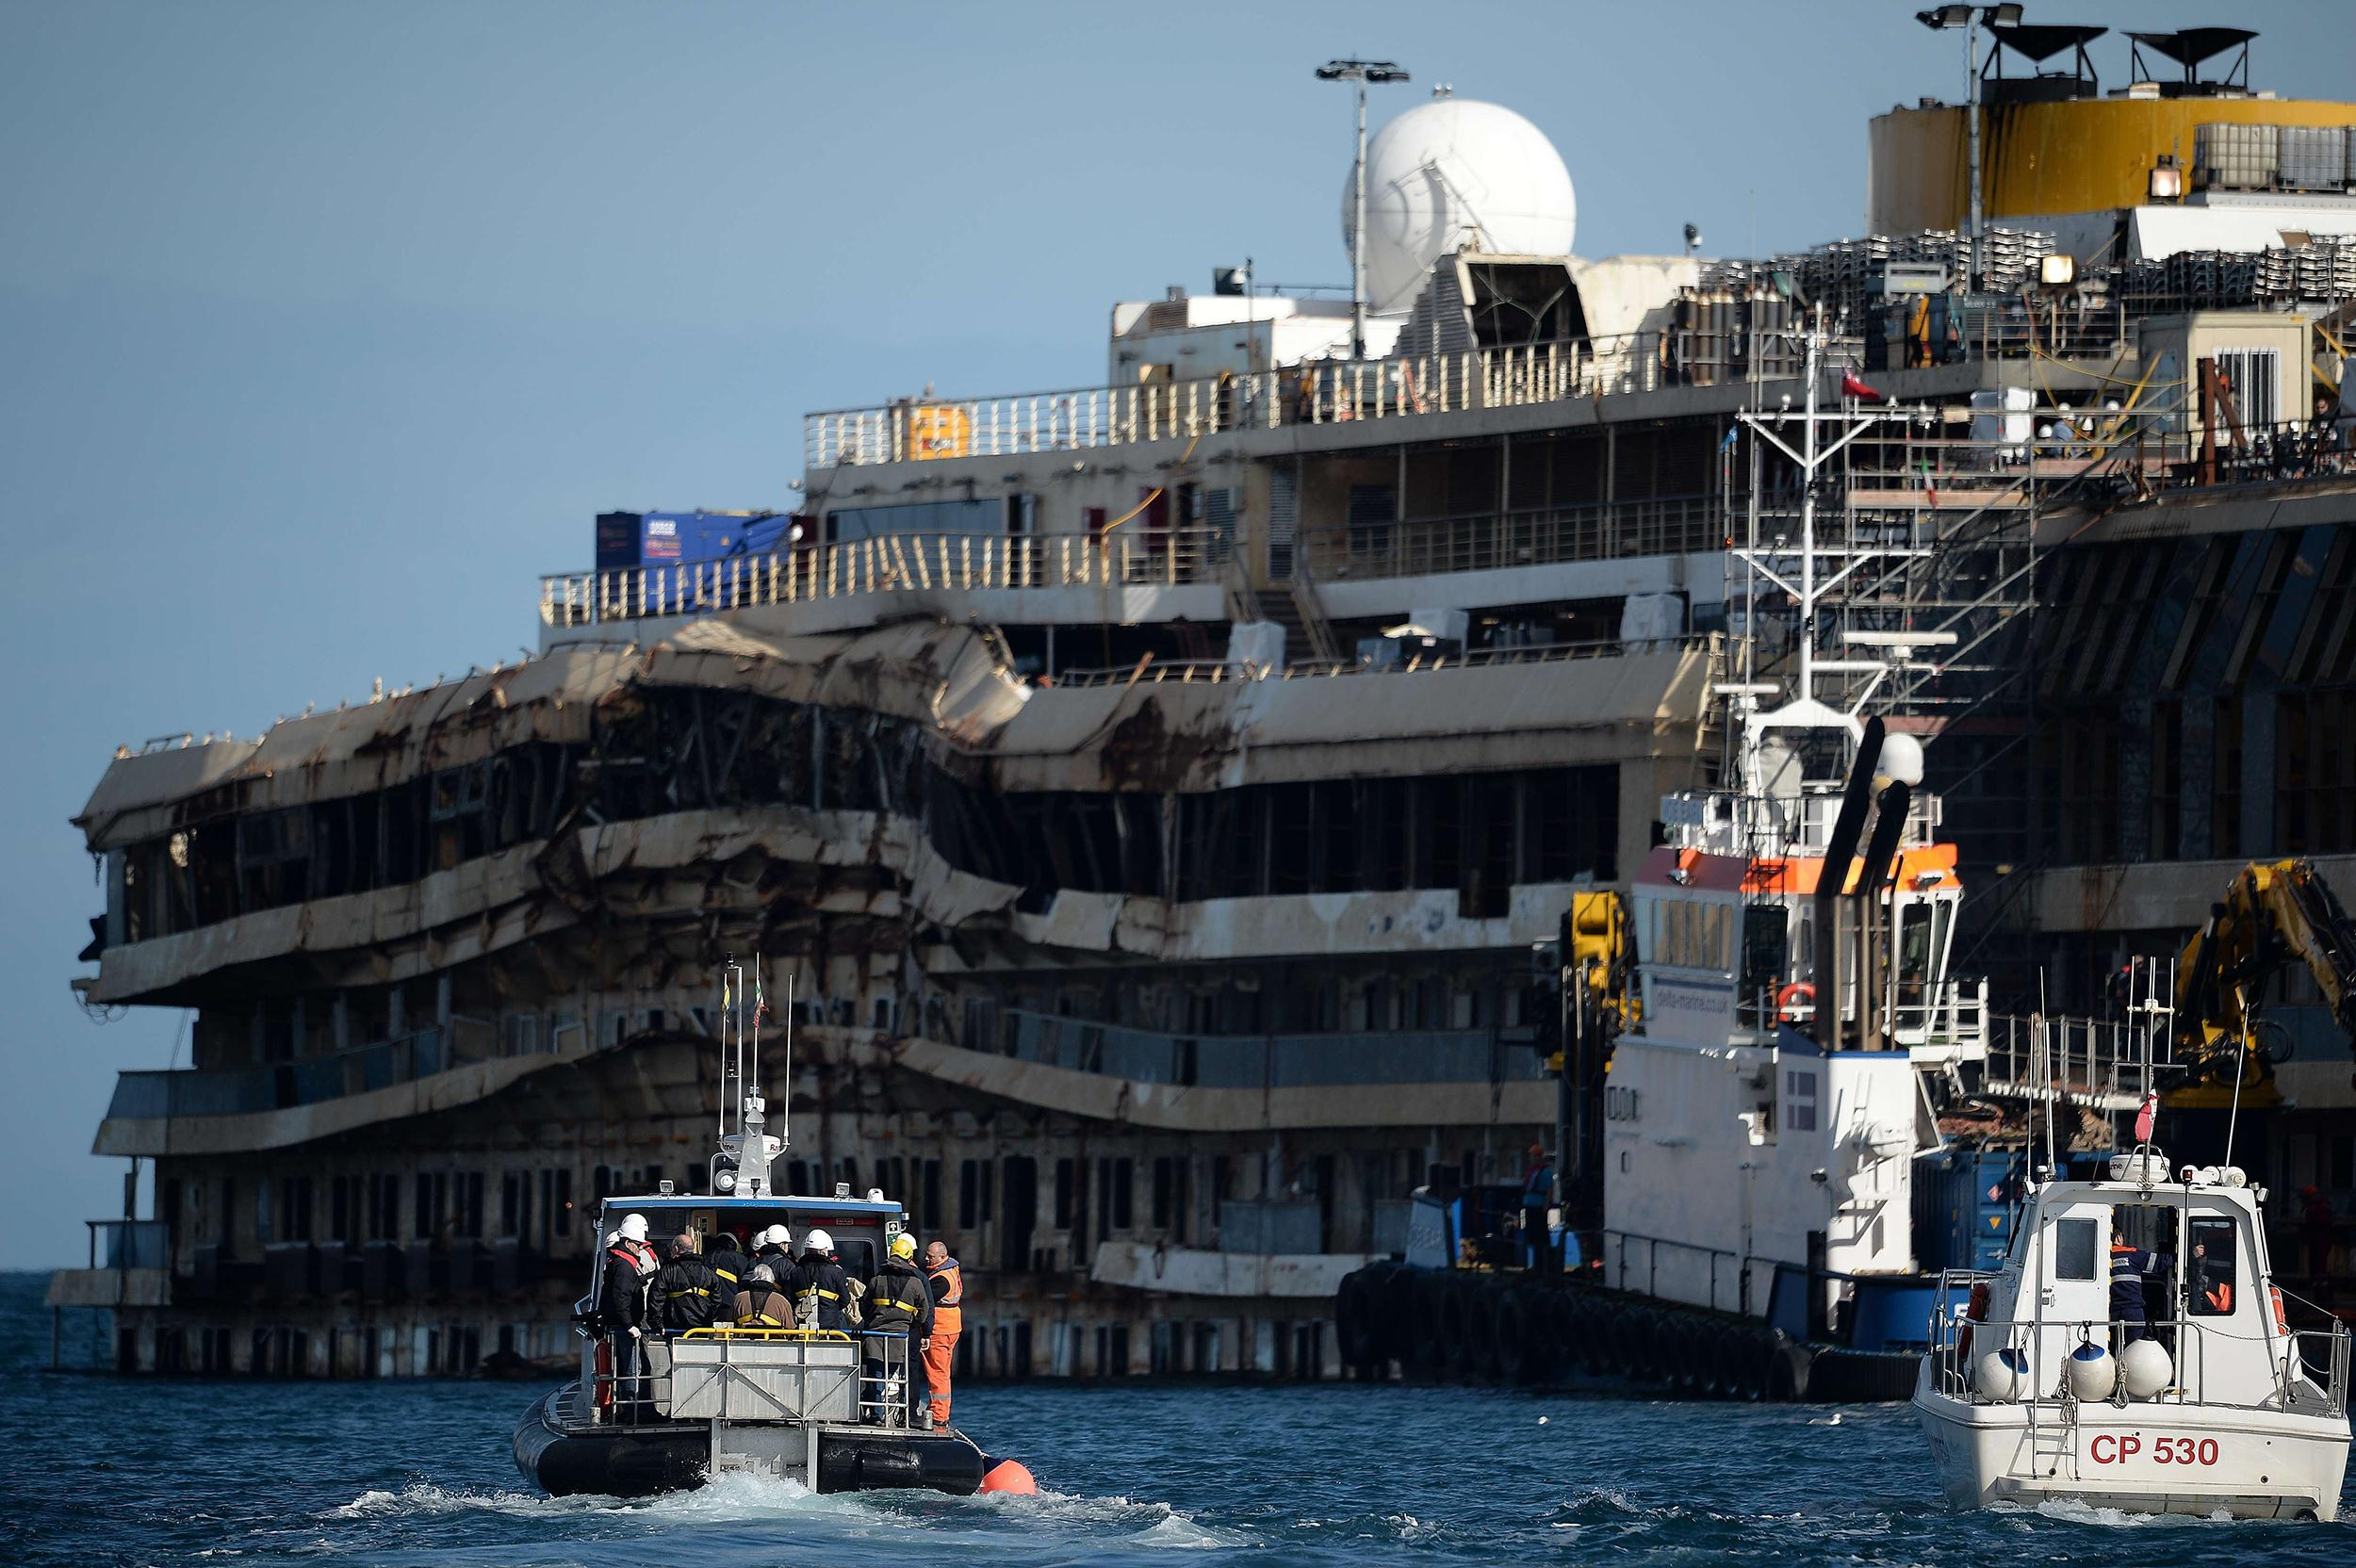 Image: Costa Concordia cruise ship captain Francesco Schettino returns to the wrecked Costa Concordia for the first time.